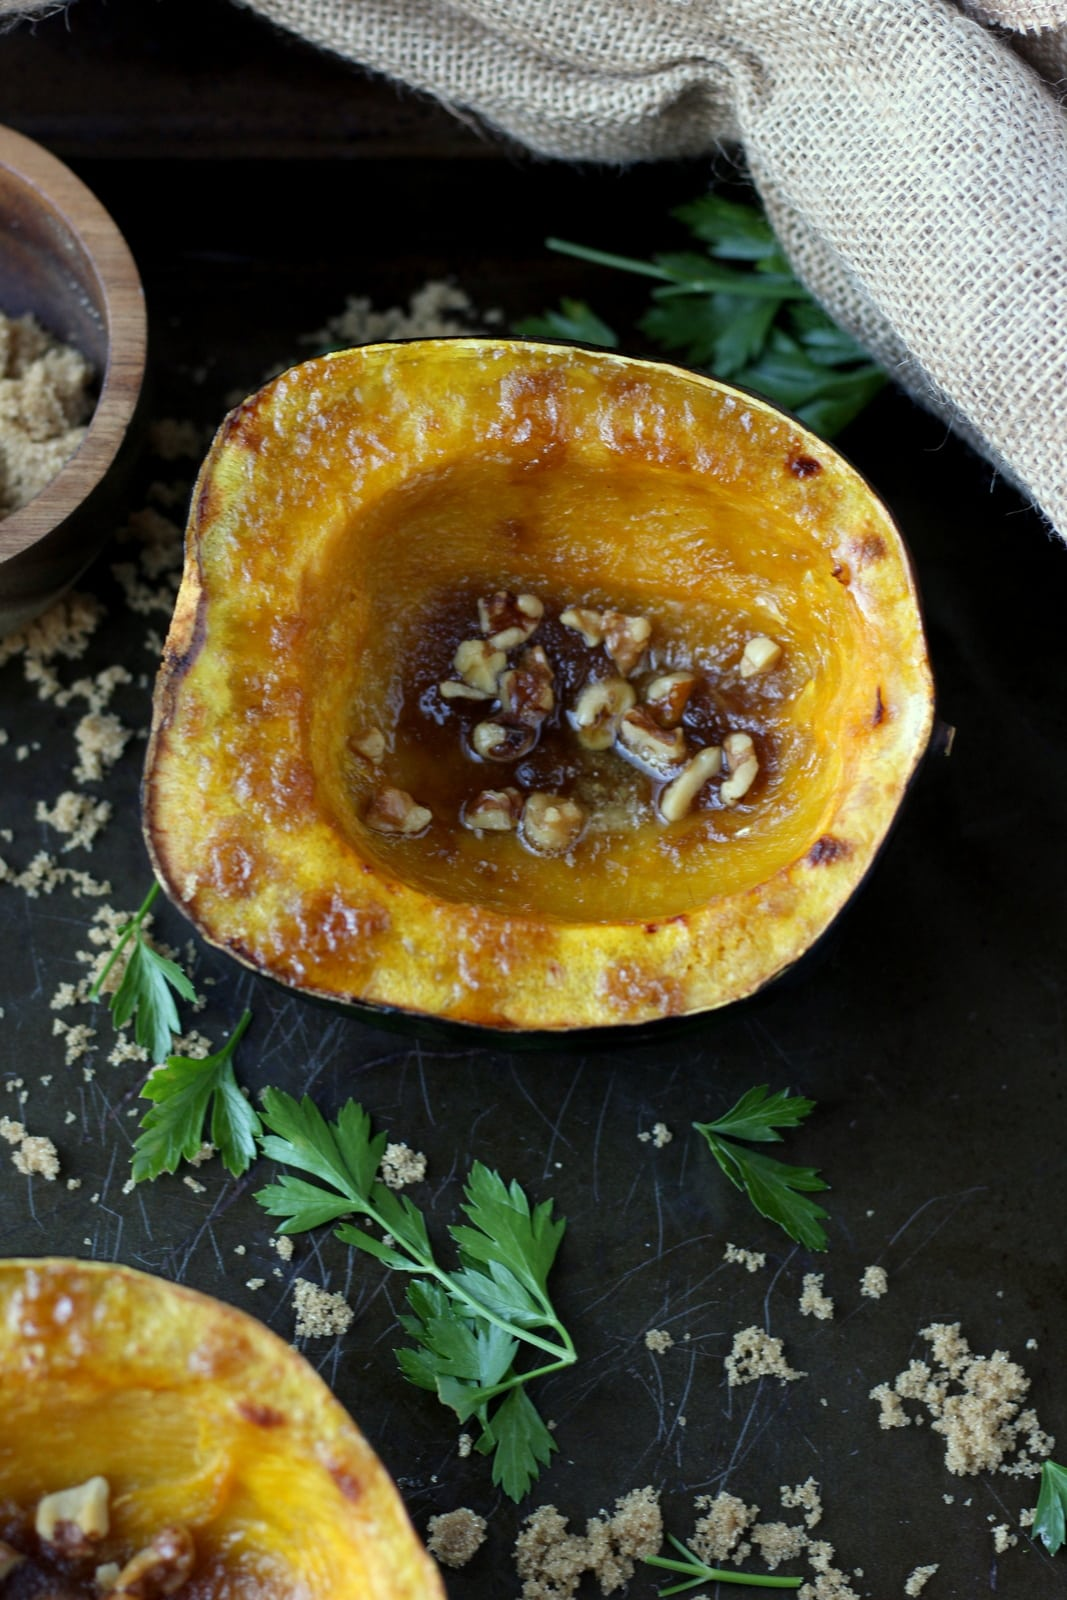 Roasted Acorn Squash with Walnuts, Browned Butter and Brown Sugar. The perfect fall side dish for any meal! thewoodenskillet.com #foodphotography #foodstyling